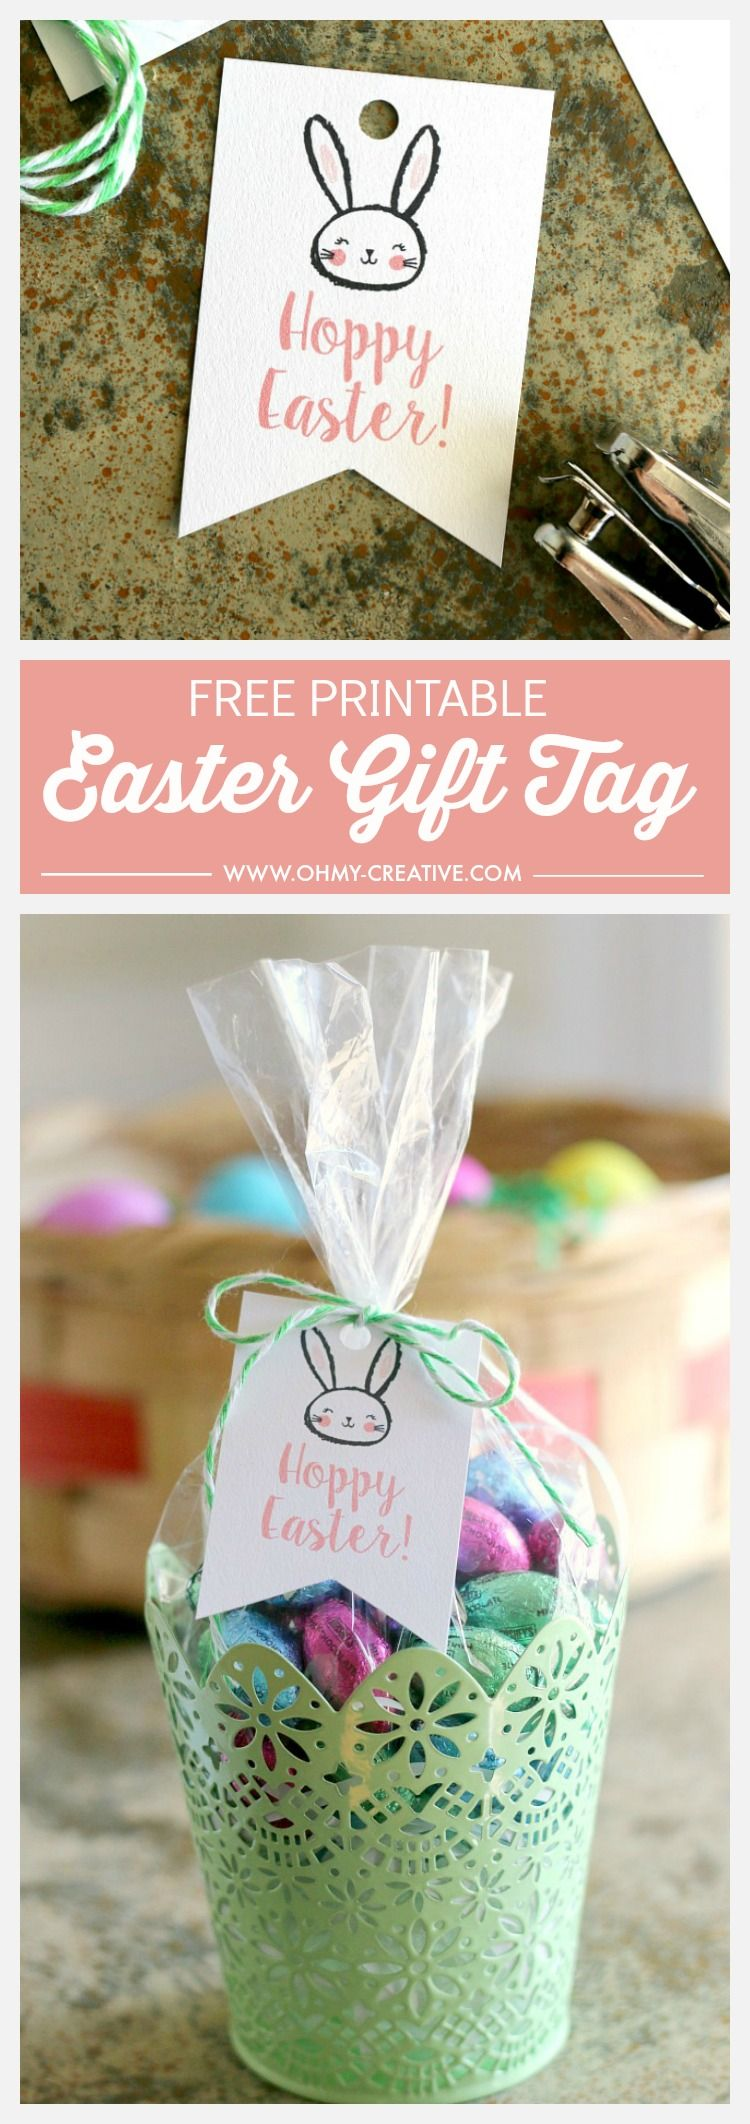 Free printable hoppy easter gift tags free printable hoppy easter gift tags negle Gallery